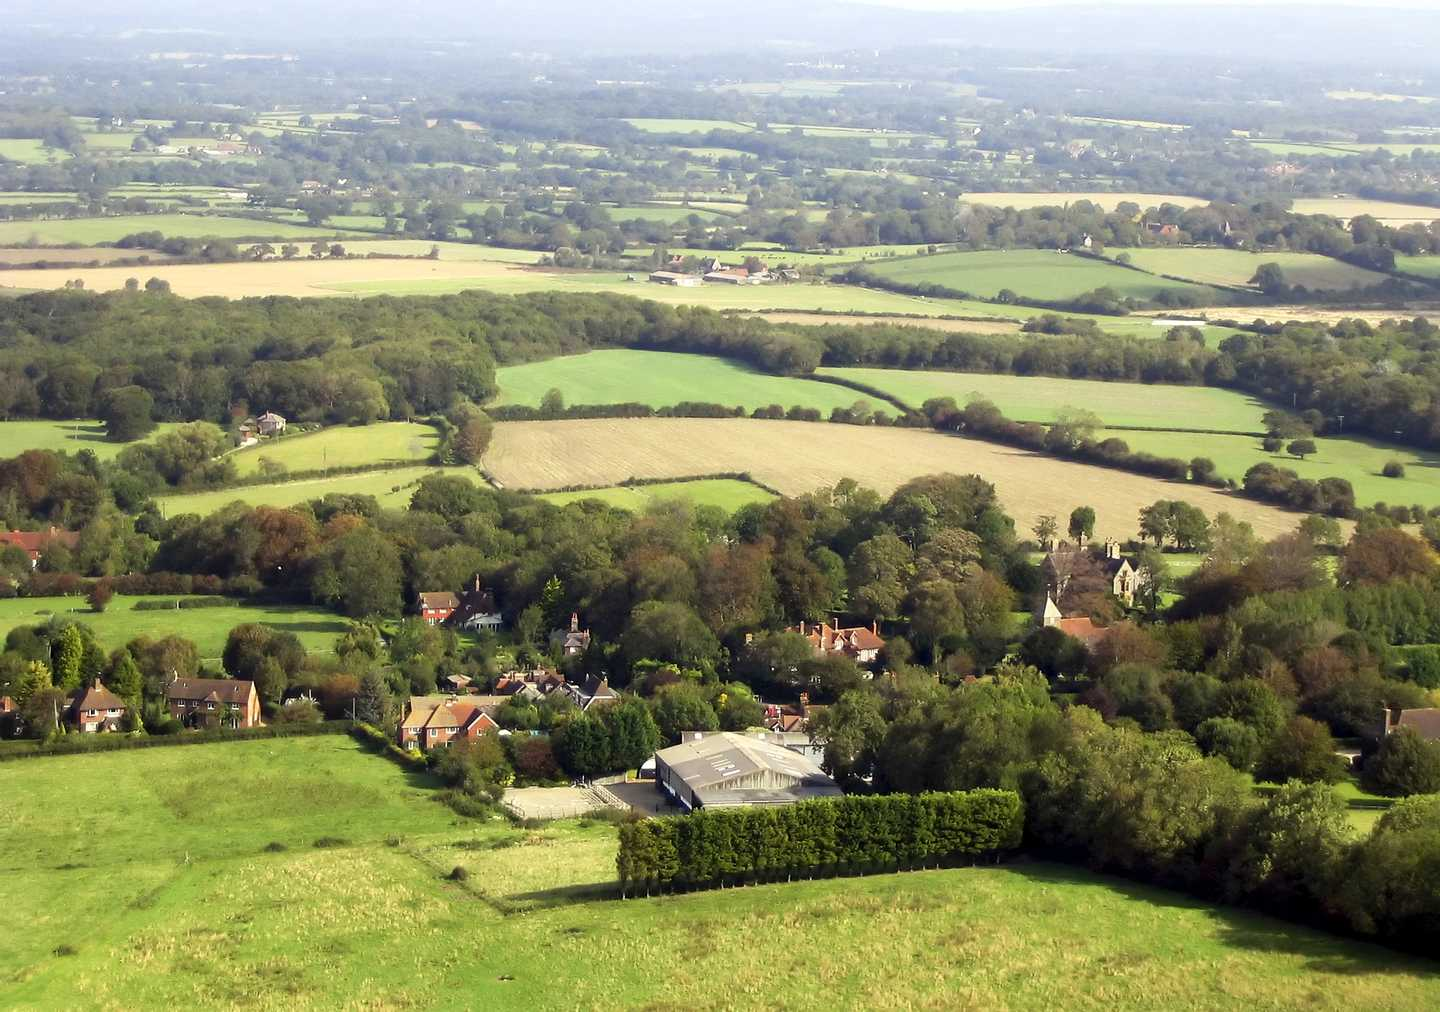 Aerial view of South Downs